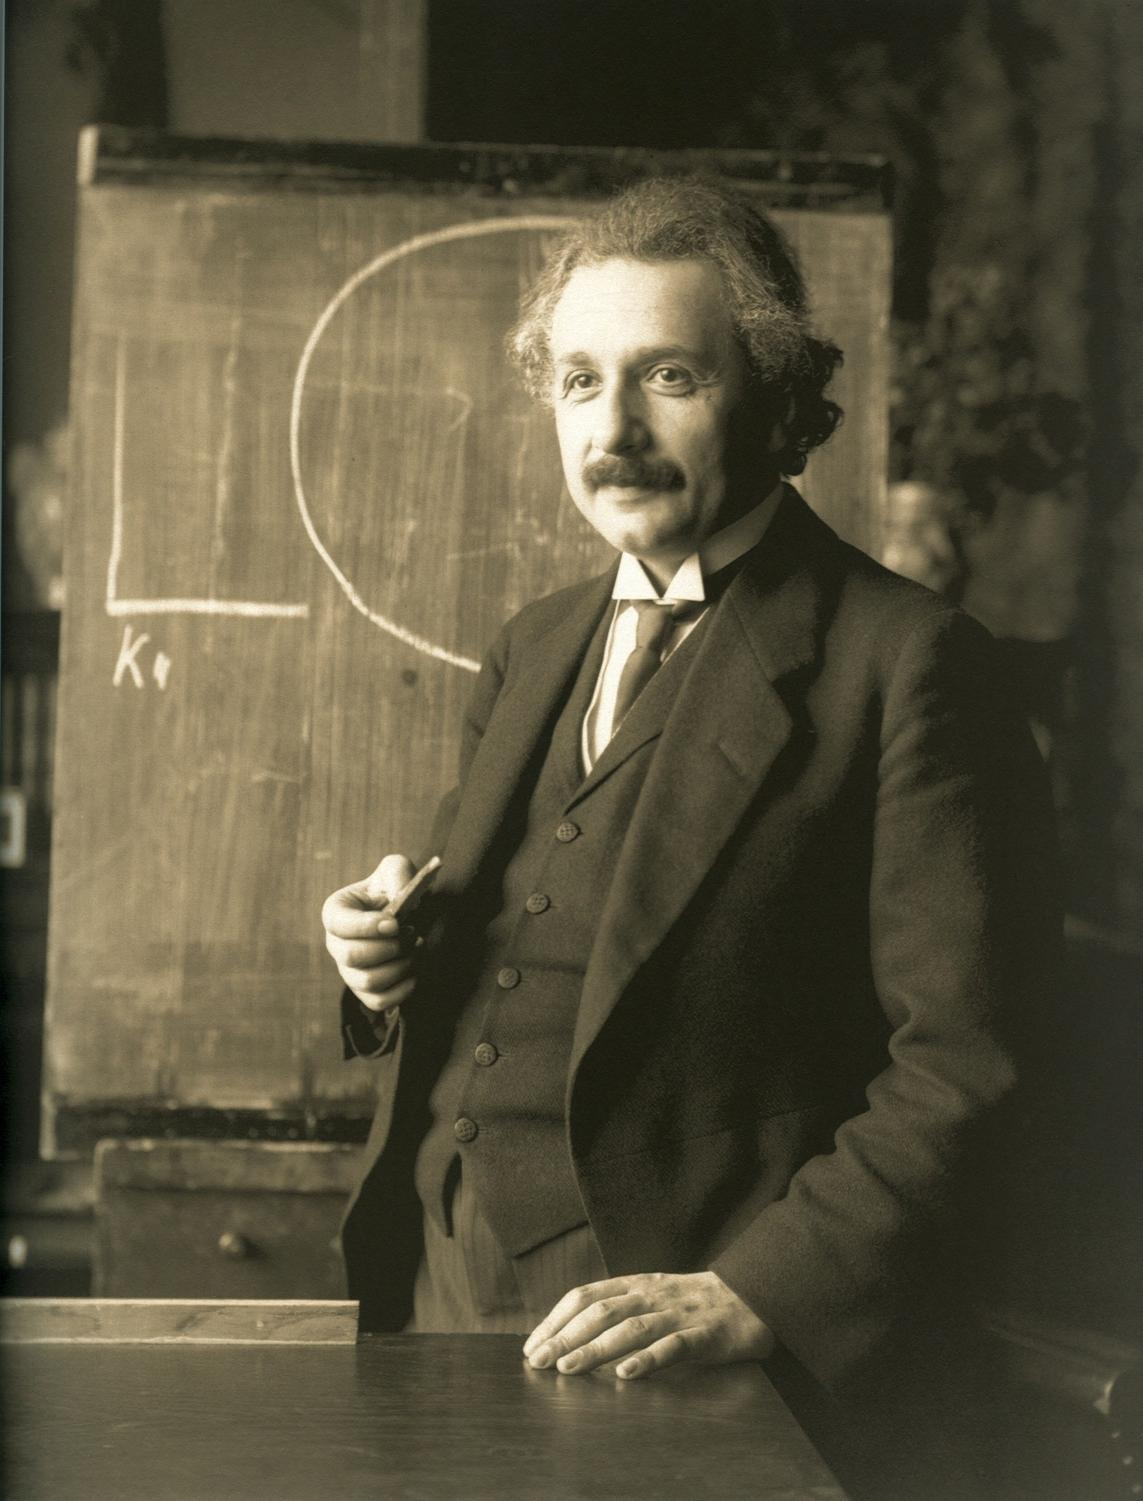 Albert Einstein was a German-American physicist and probably the most well-known scientist of the 20th century.